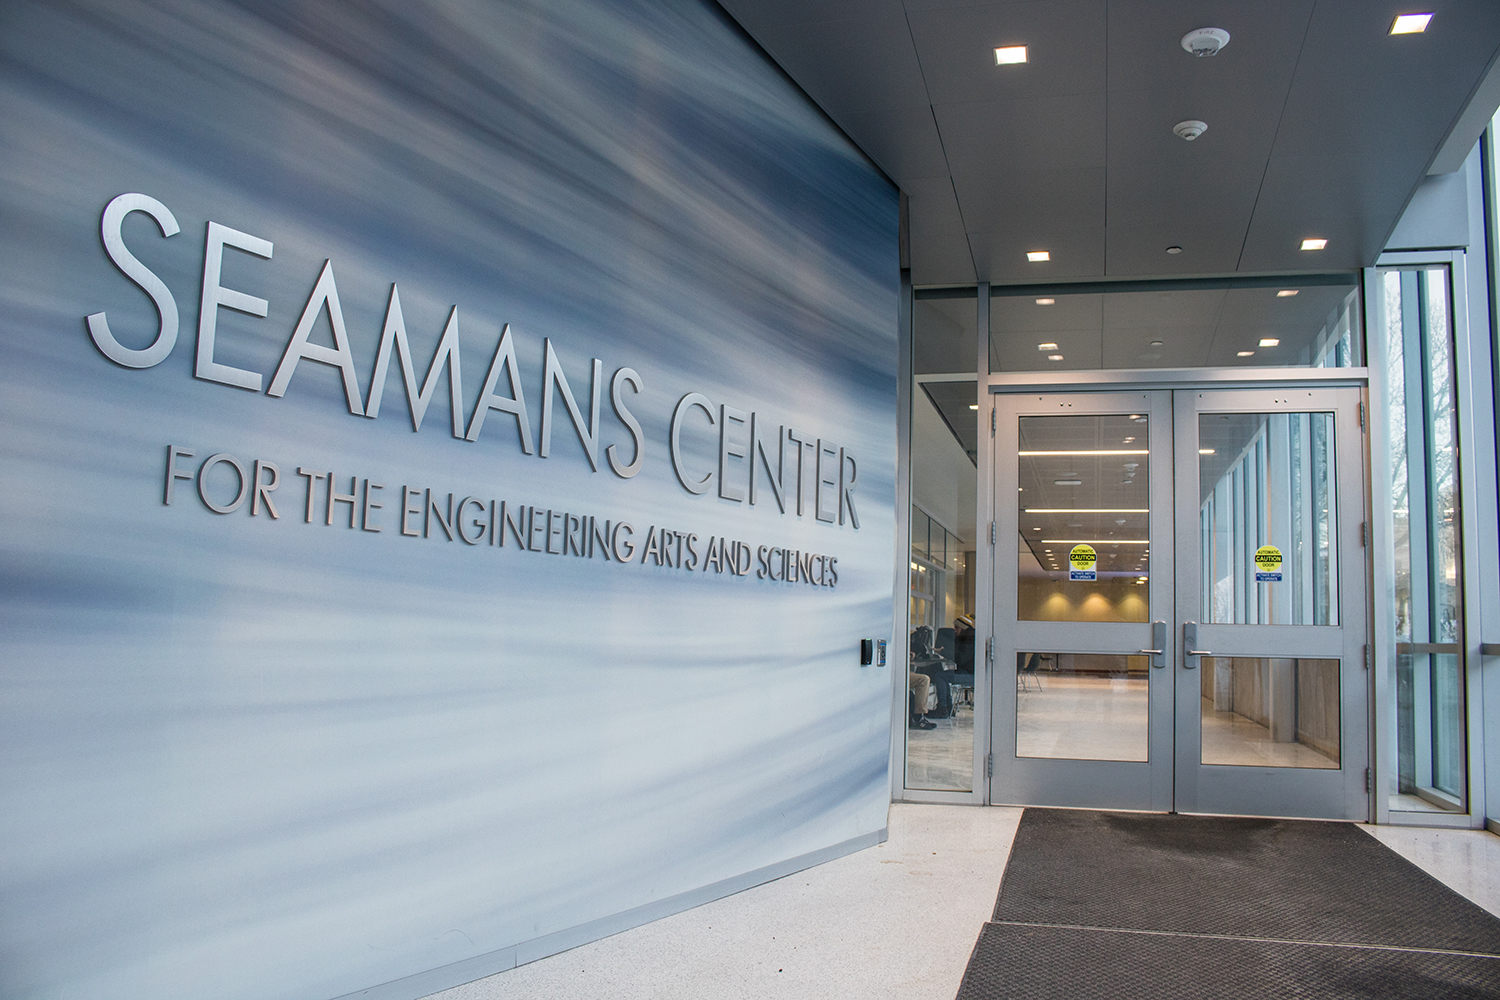 The Seamans Center for the Engineering Arts and Sciences is seen on Tuesday, January 29, 2019. (Shivansh Ahuja/The Daily Iowan)